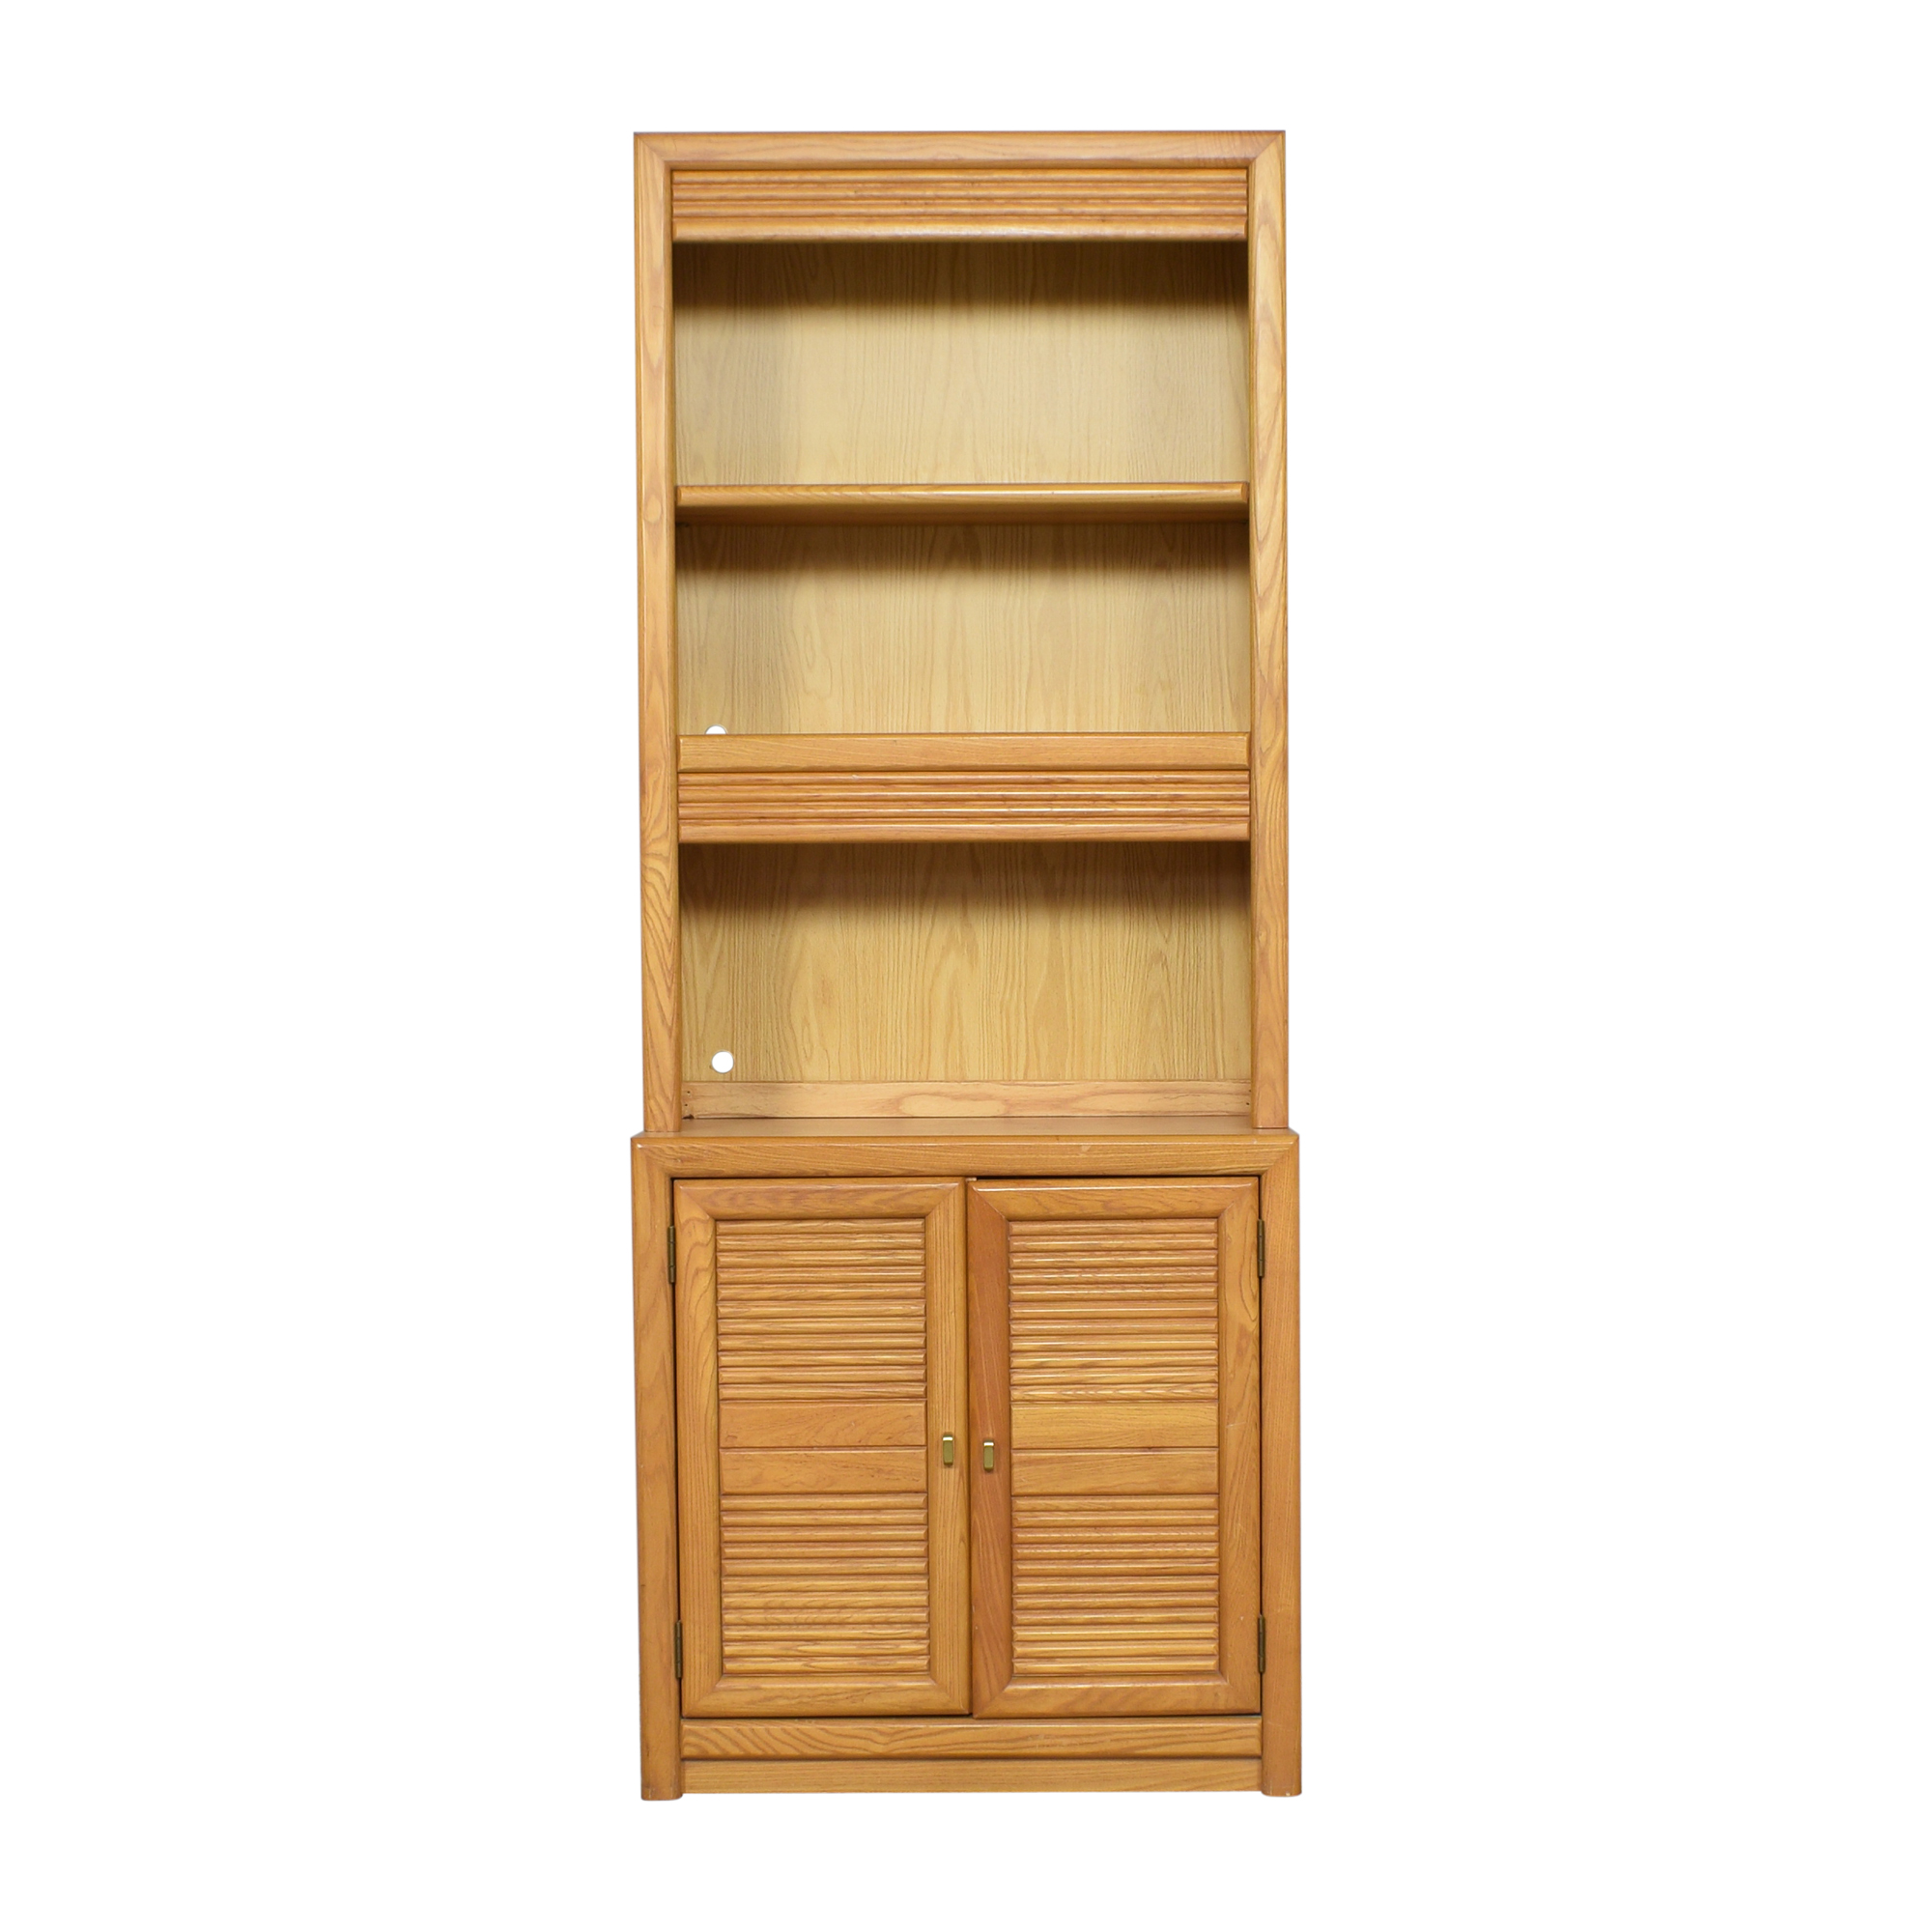 Bookcase with Cabinet / Storage